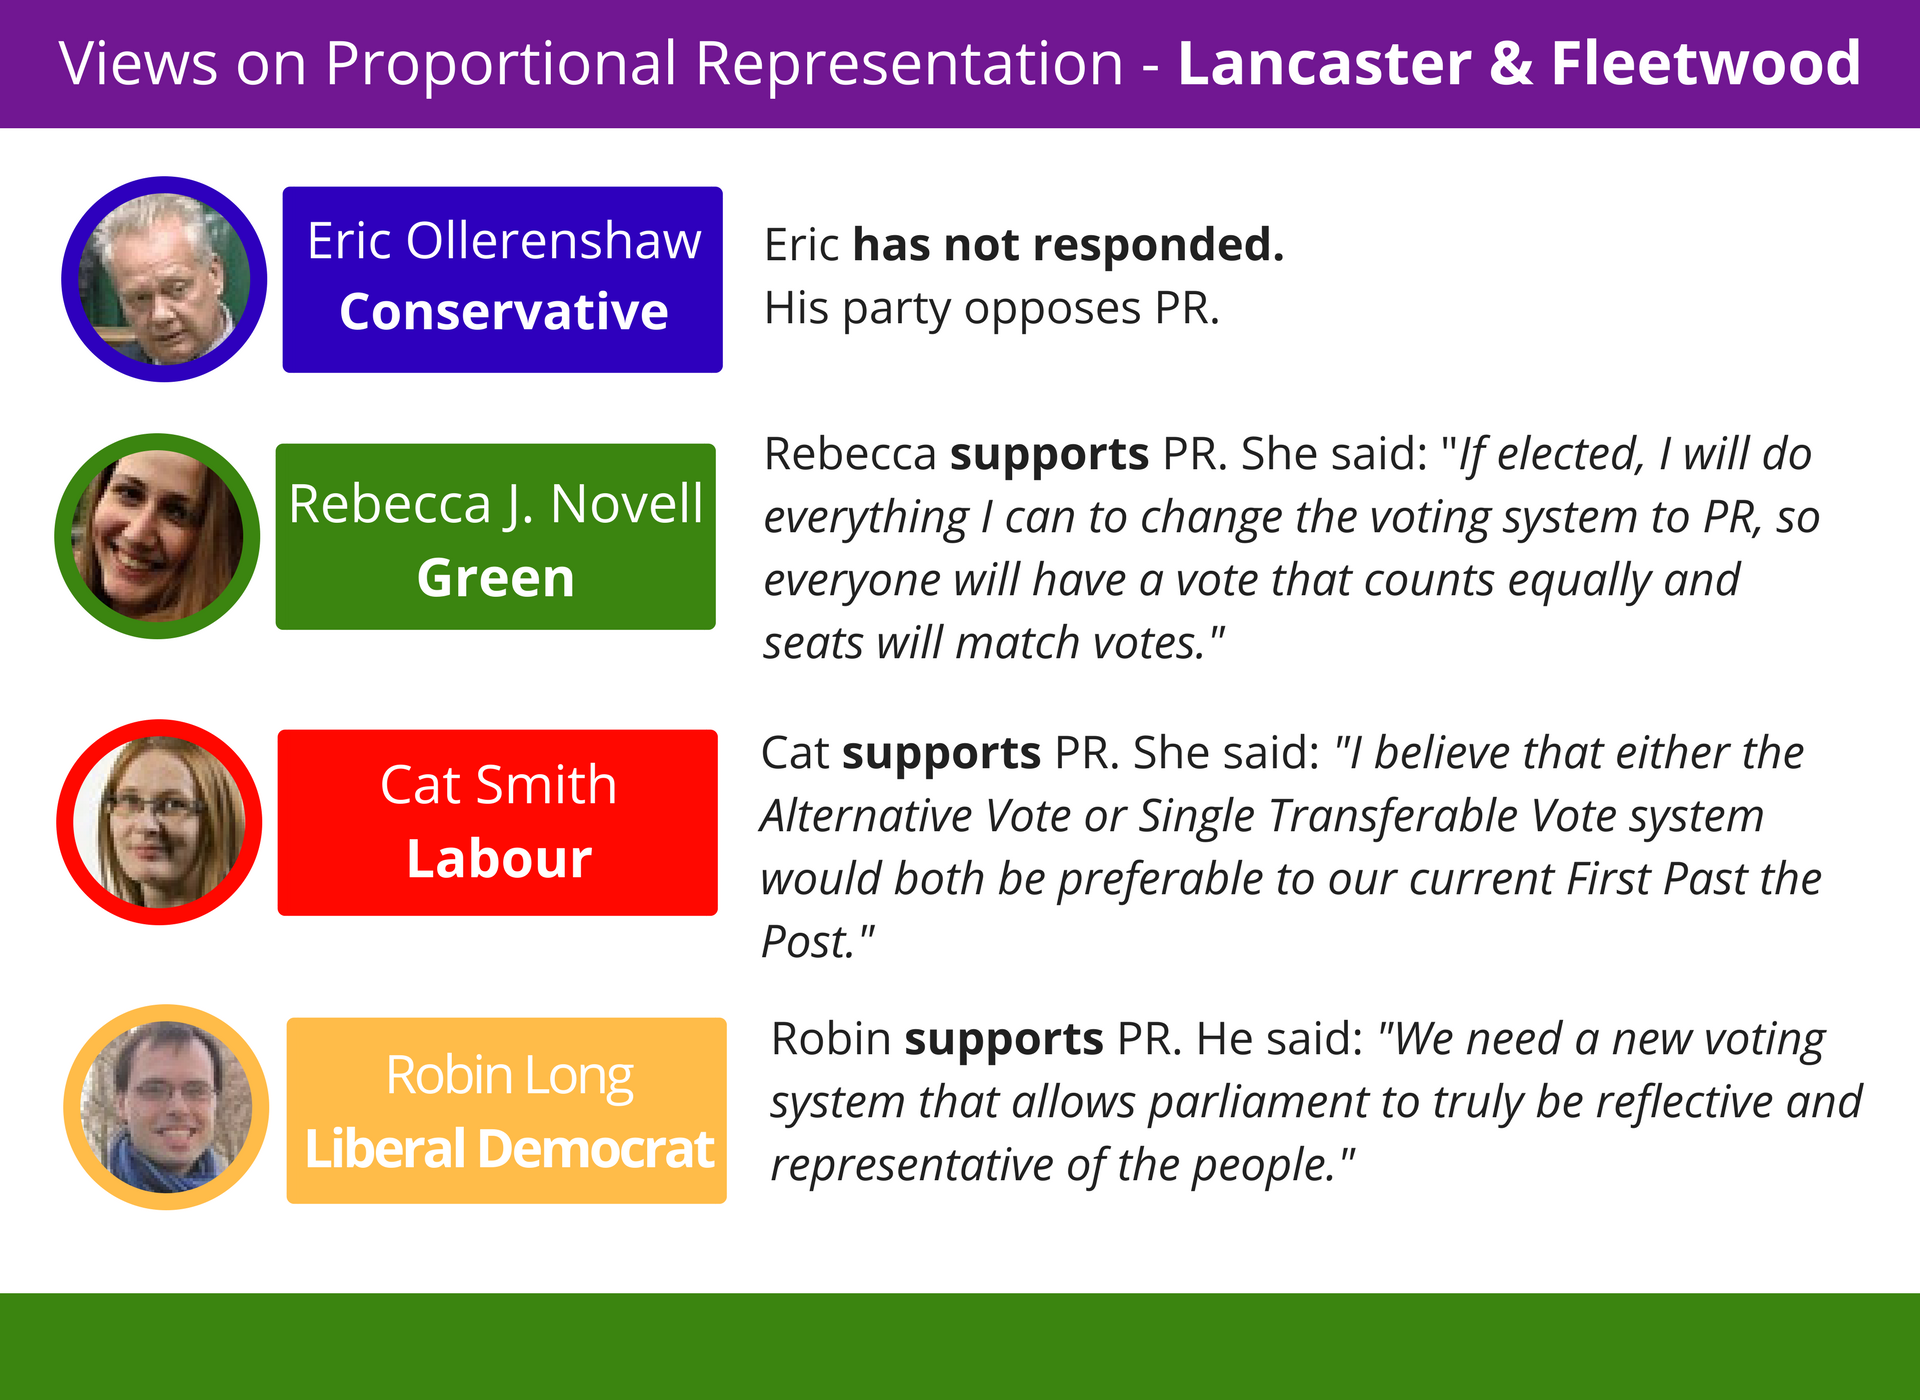 Finally, in Lancaster & Fleetwood, UKIP has withdrawn for the Conservatives and three pro-PR candidates risk losing the seat to the only anti-PR candidate among them.